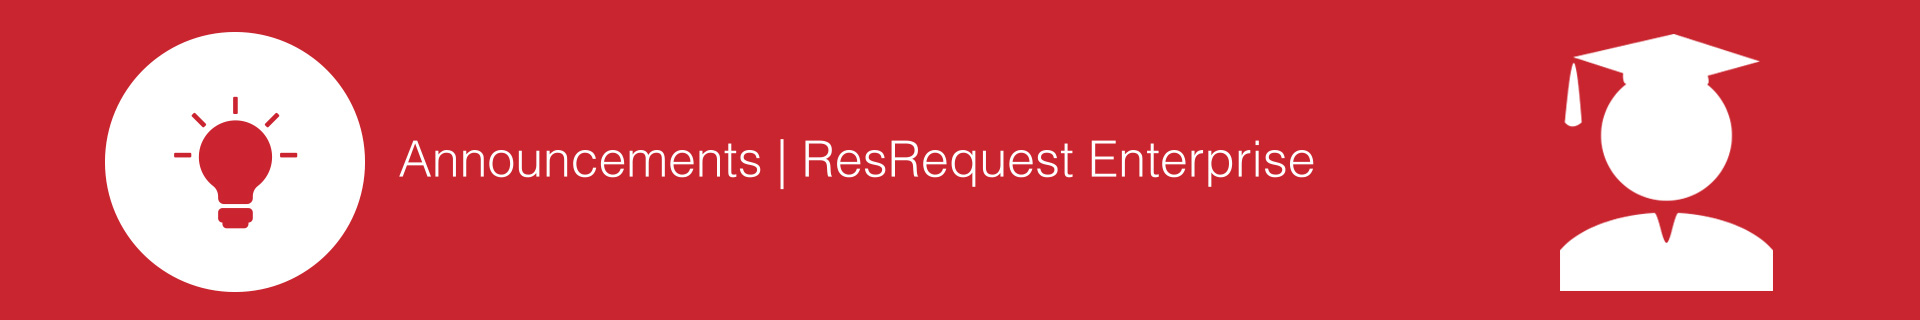 Tutorial ResRequest Enterprise Announcements